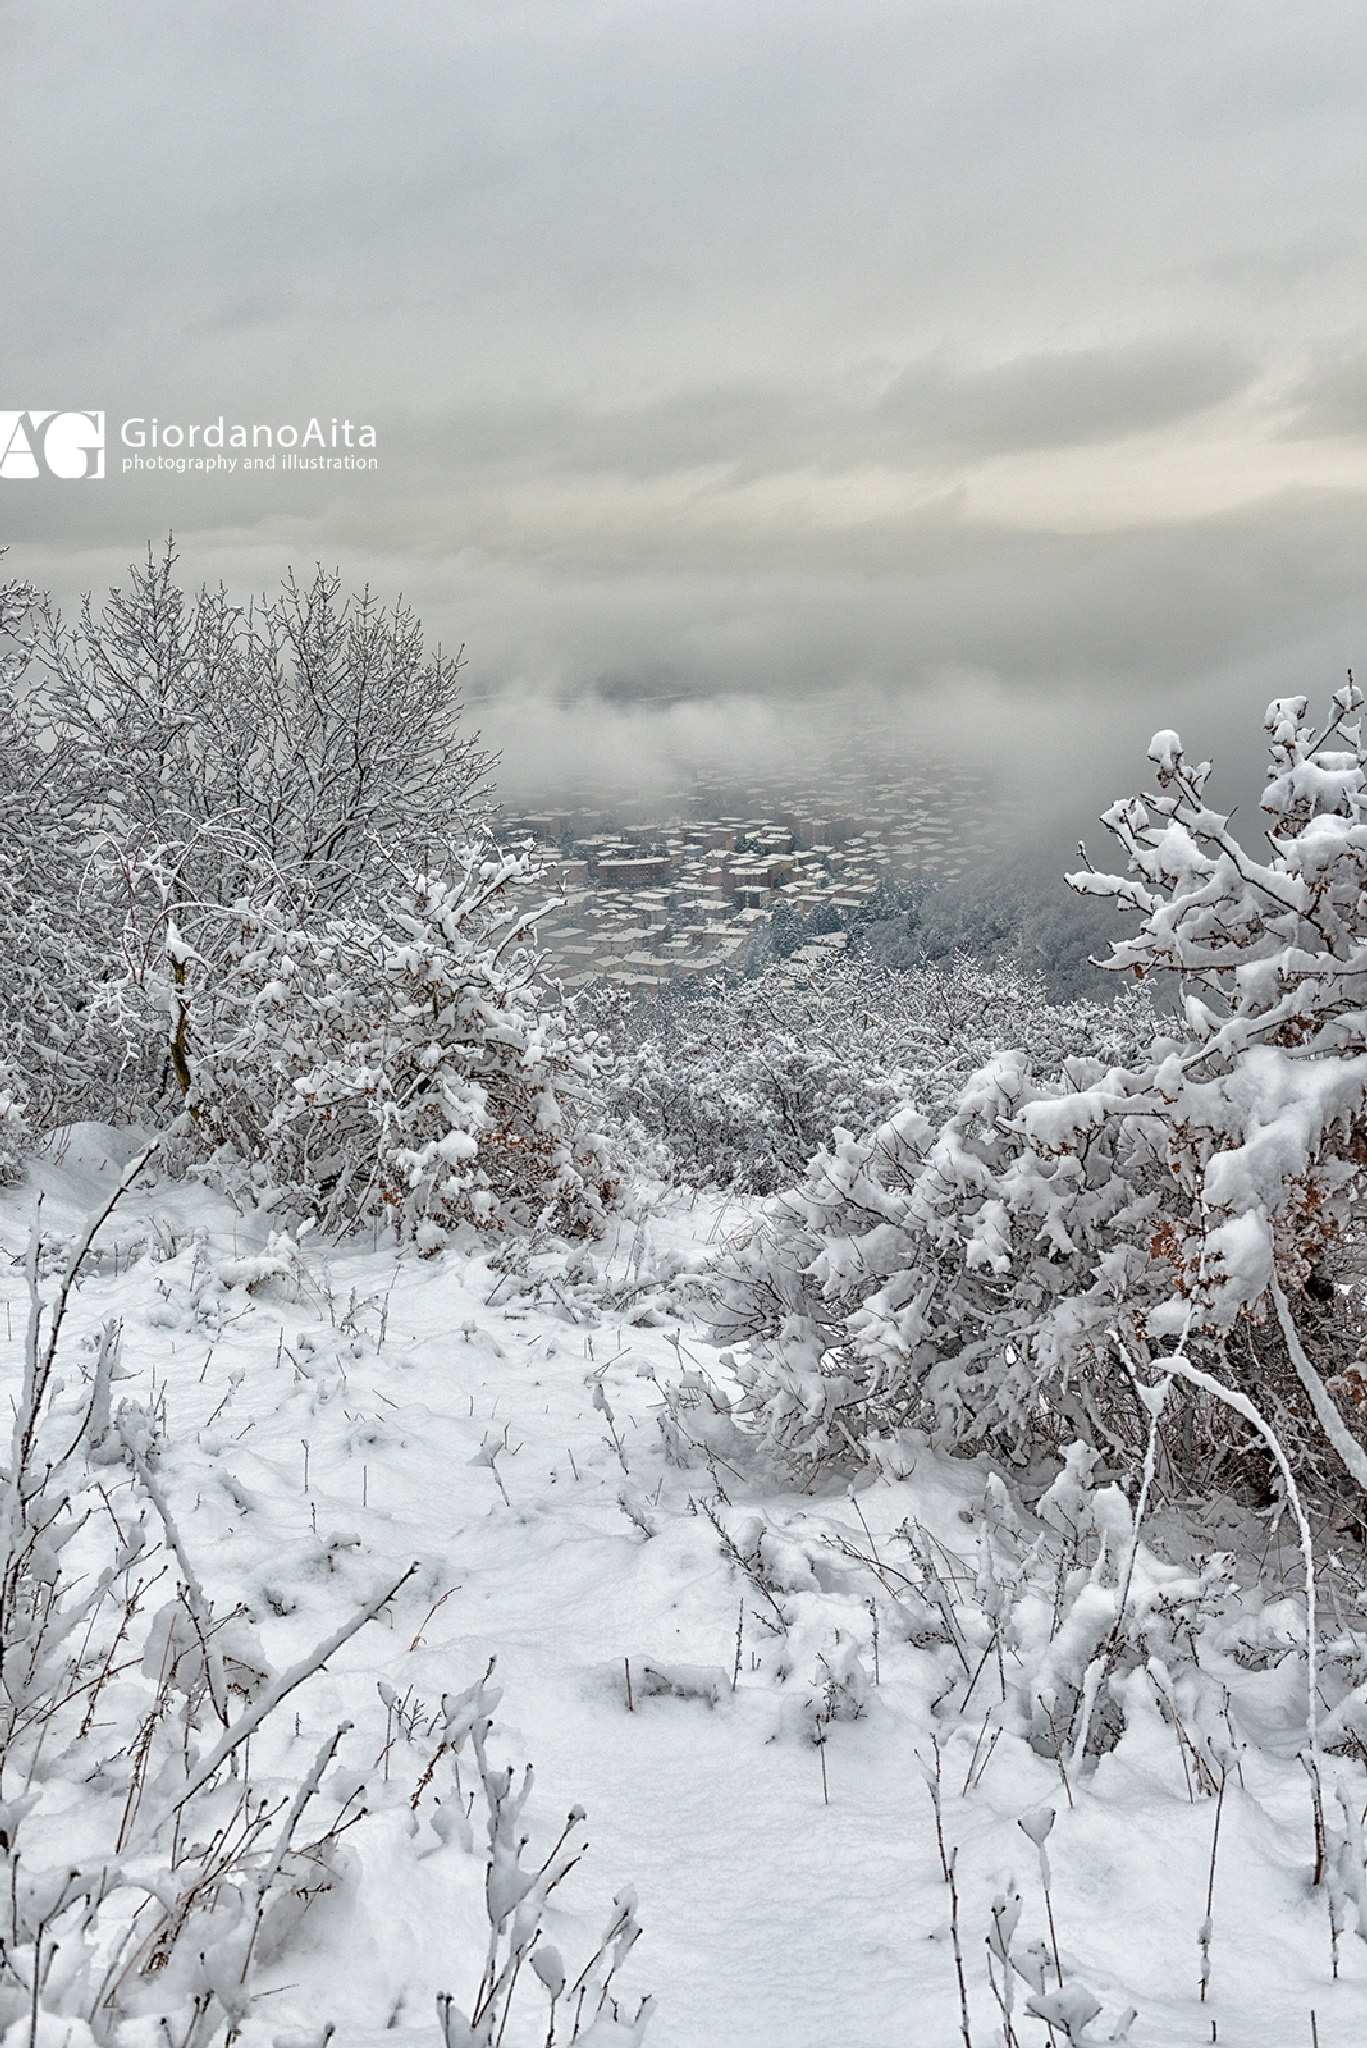 The town between snow and clouds by GiordanoAita